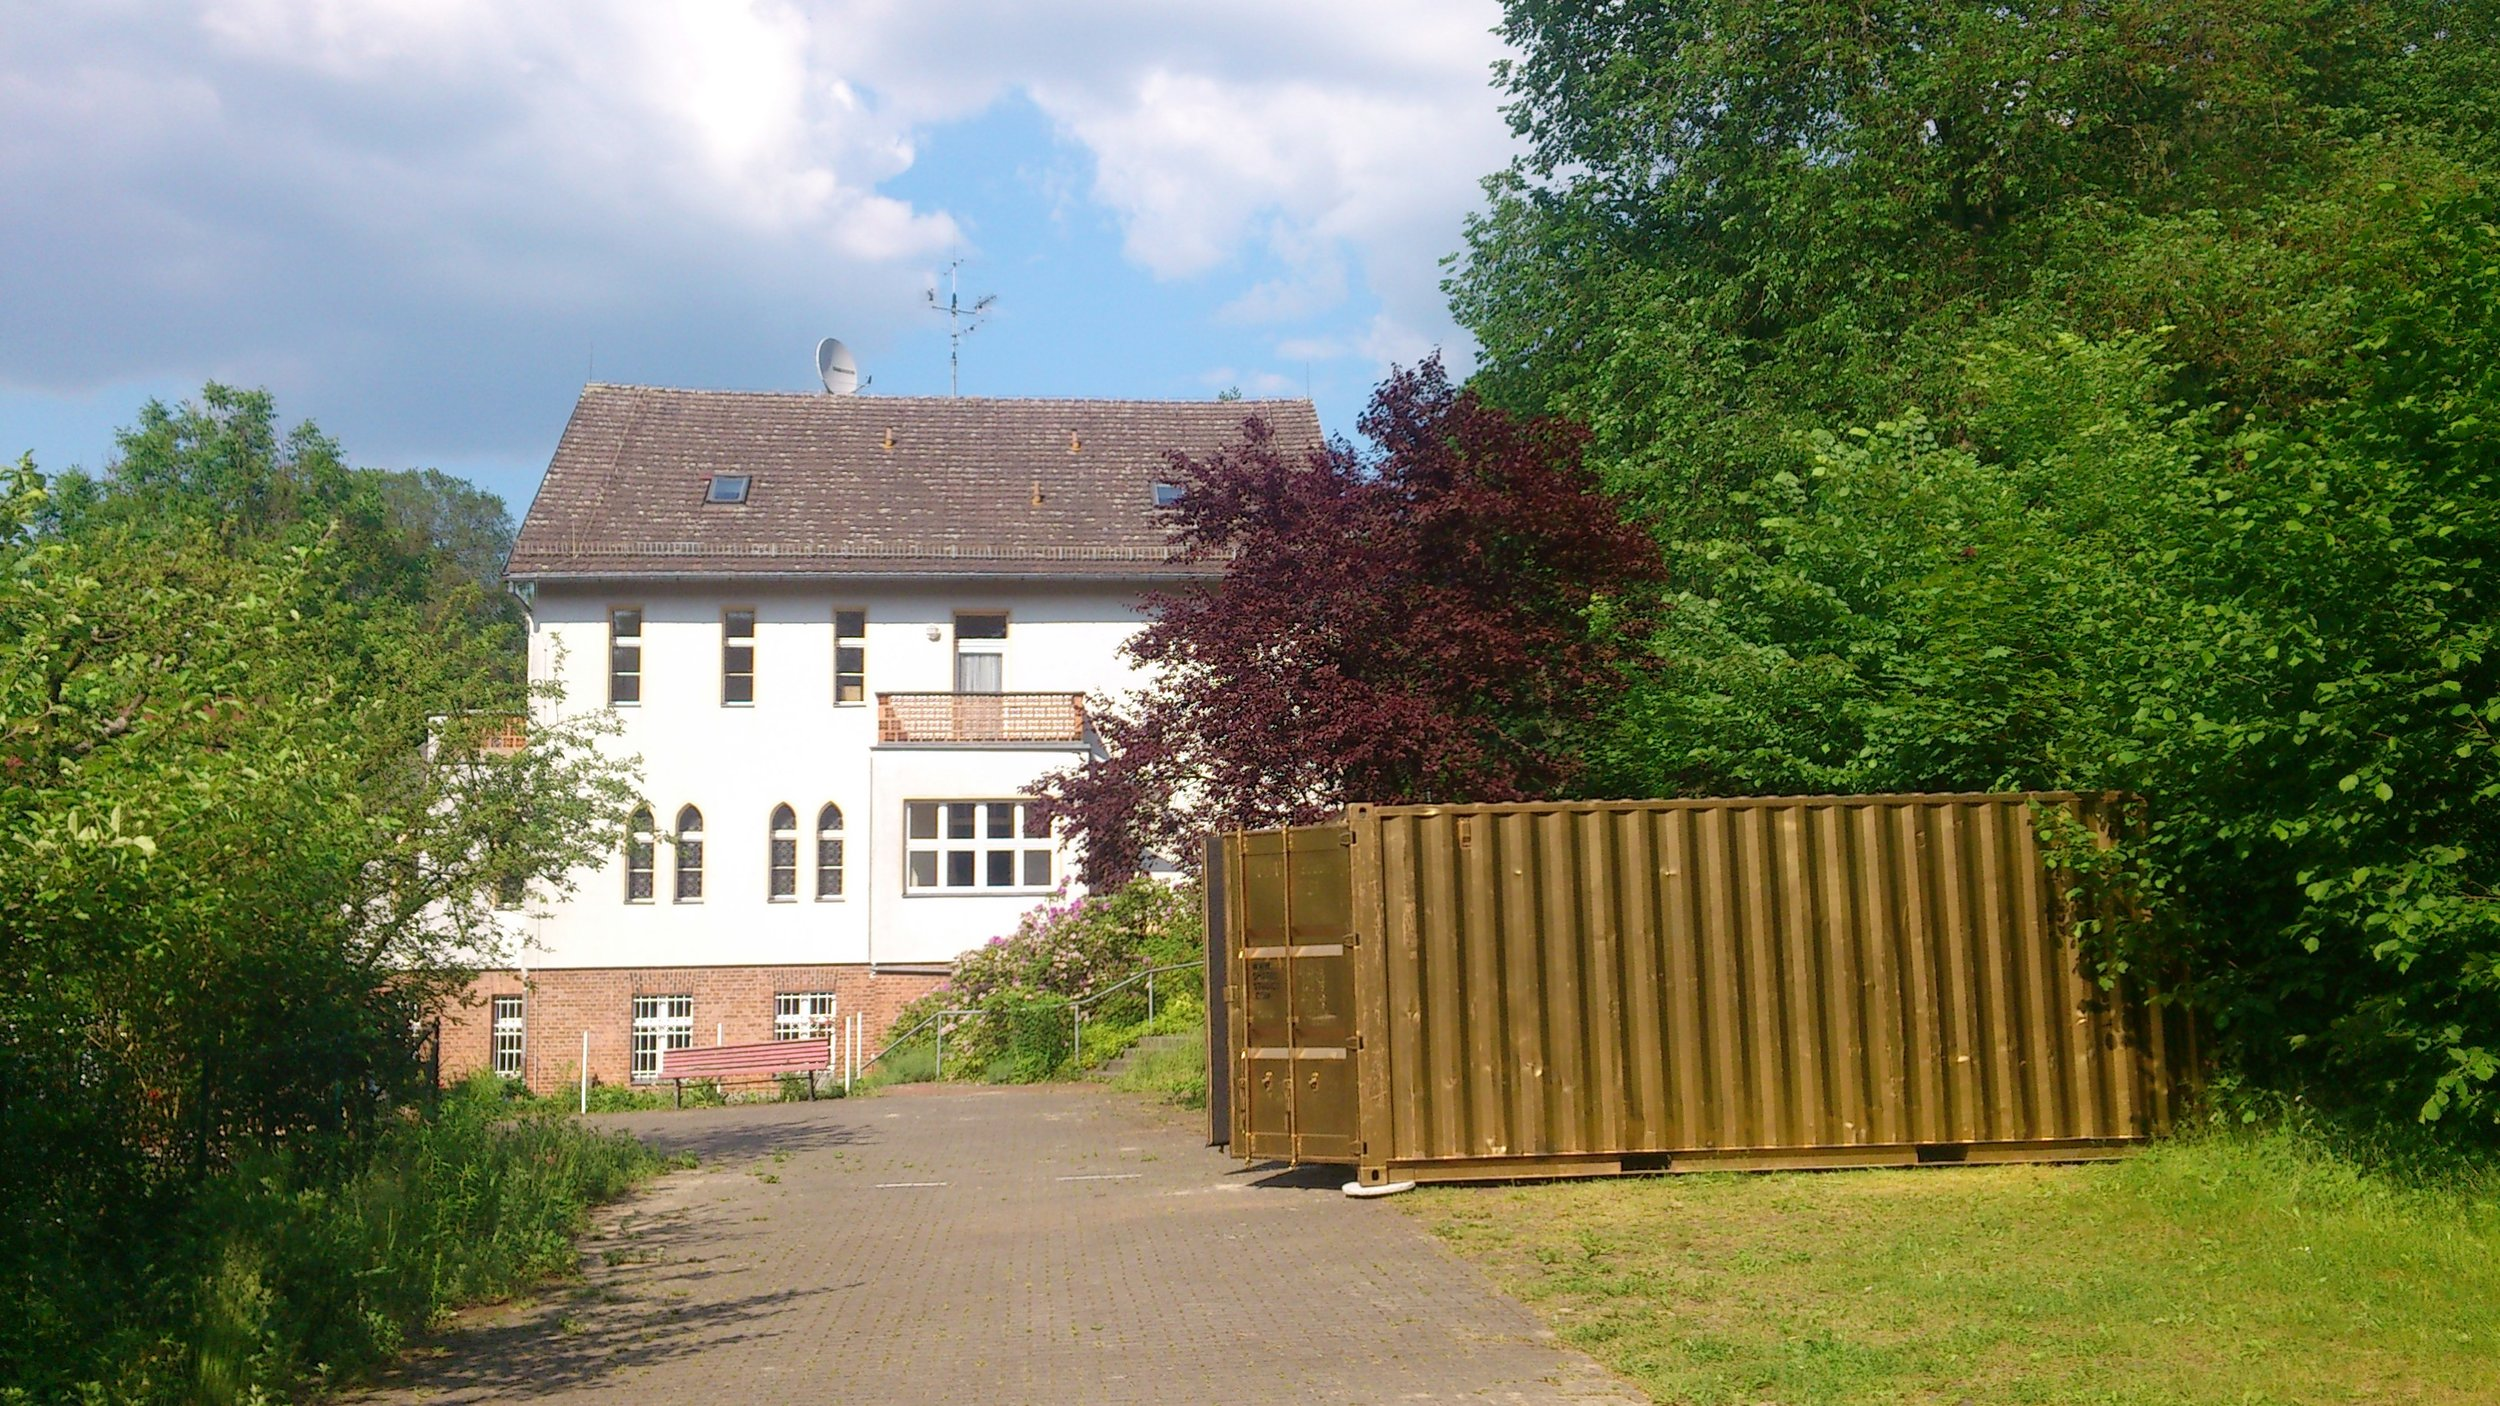 Portal outside a refugee resettlement home in Utzdorf, Germany